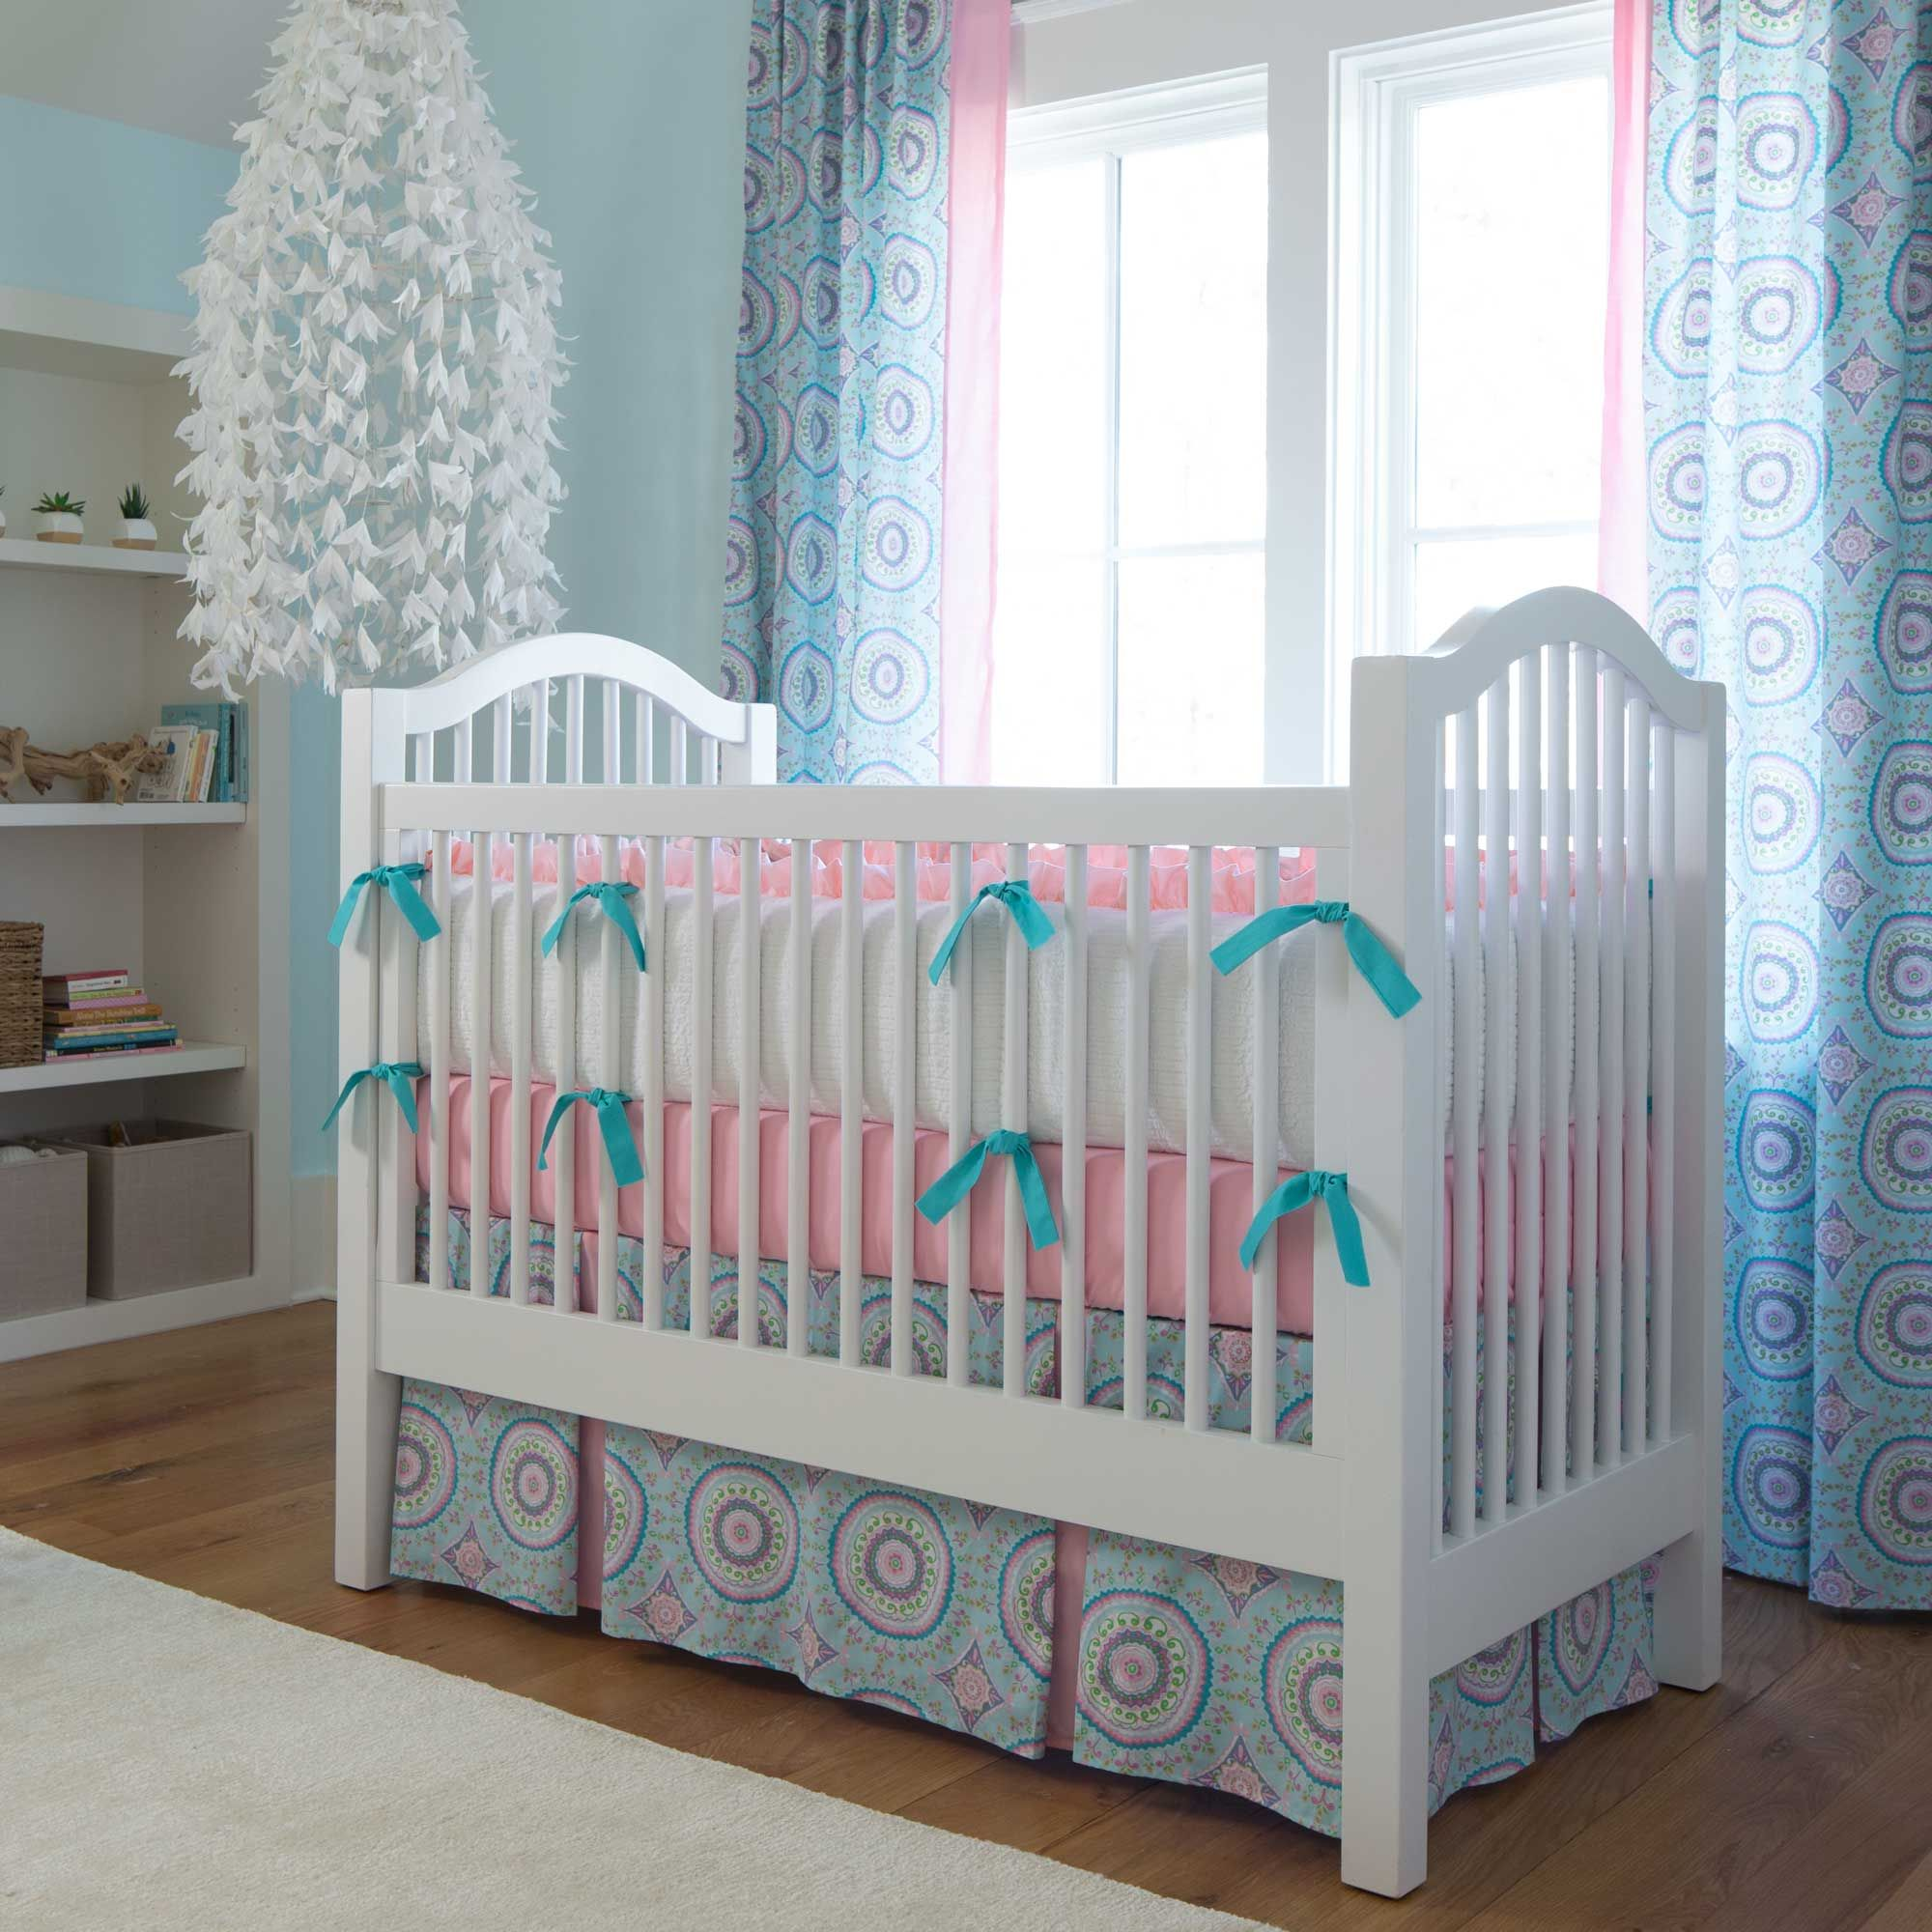 lottie add bedding cribs wishlist to crib baby sorbet img da peach product loading